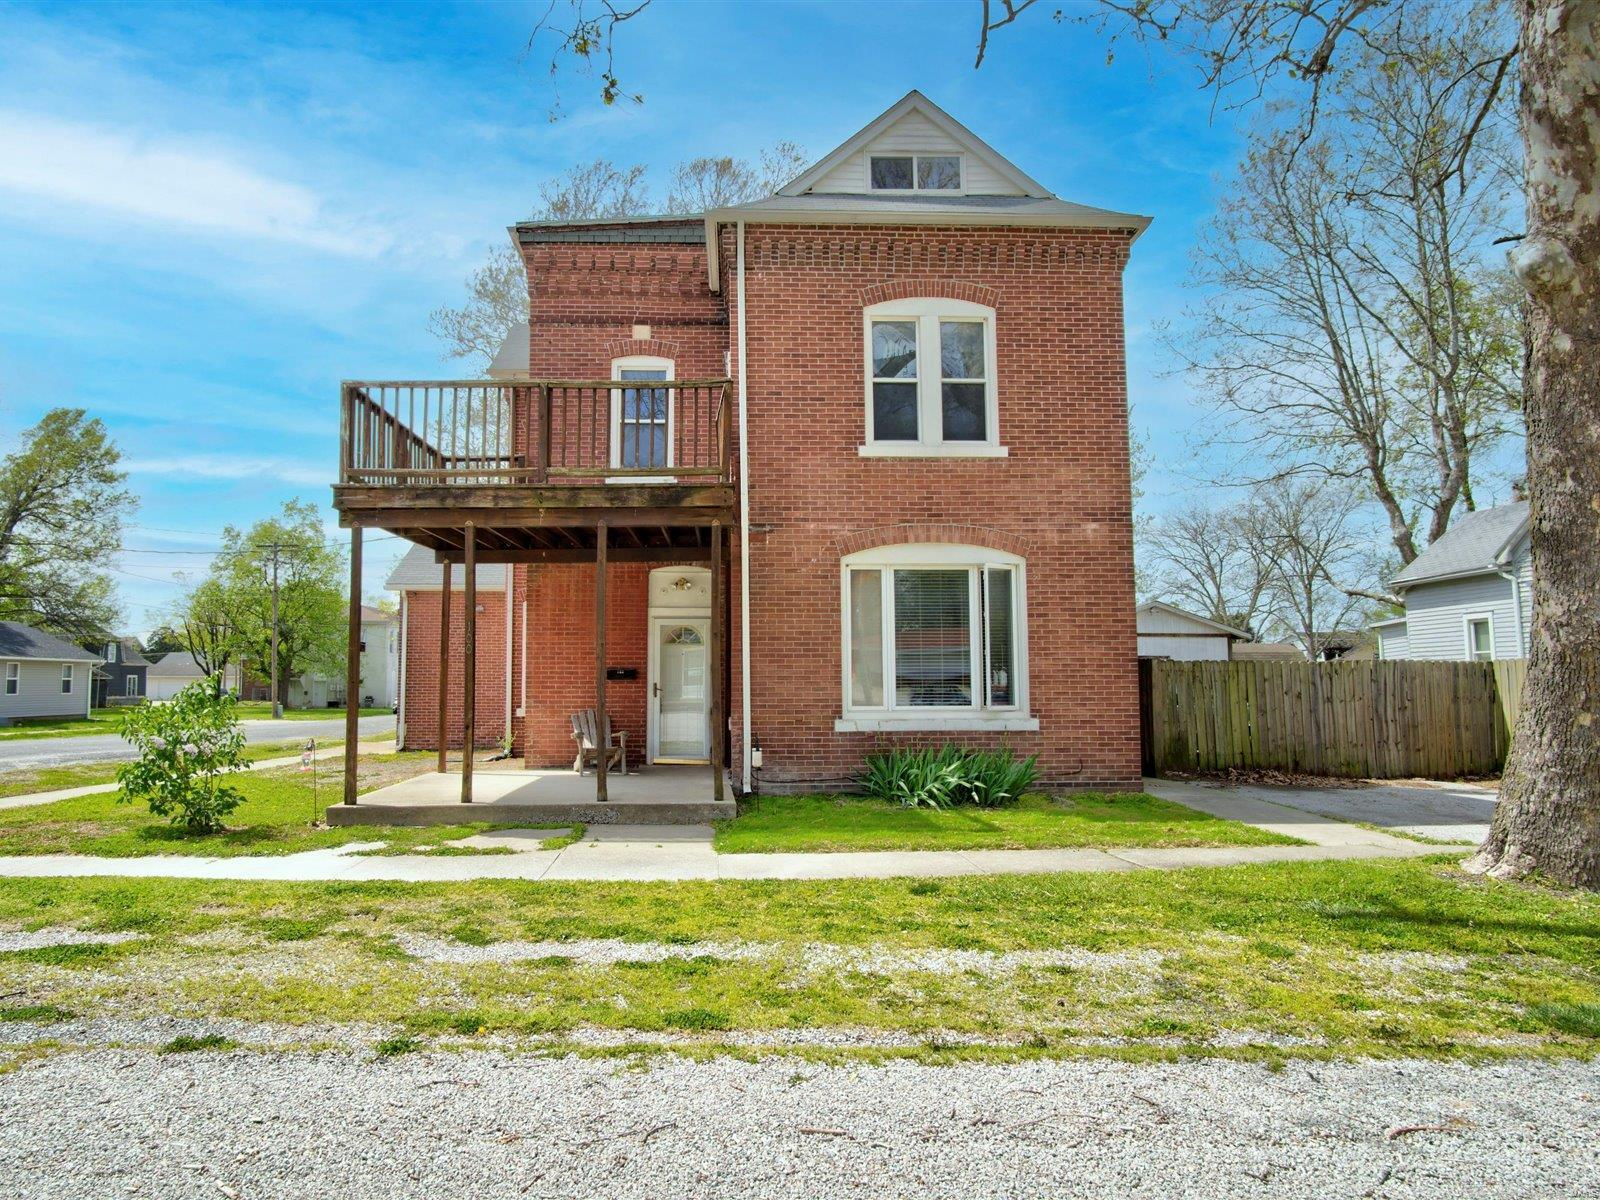 100 N Johnson Property Photo - New Athens, IL real estate listing